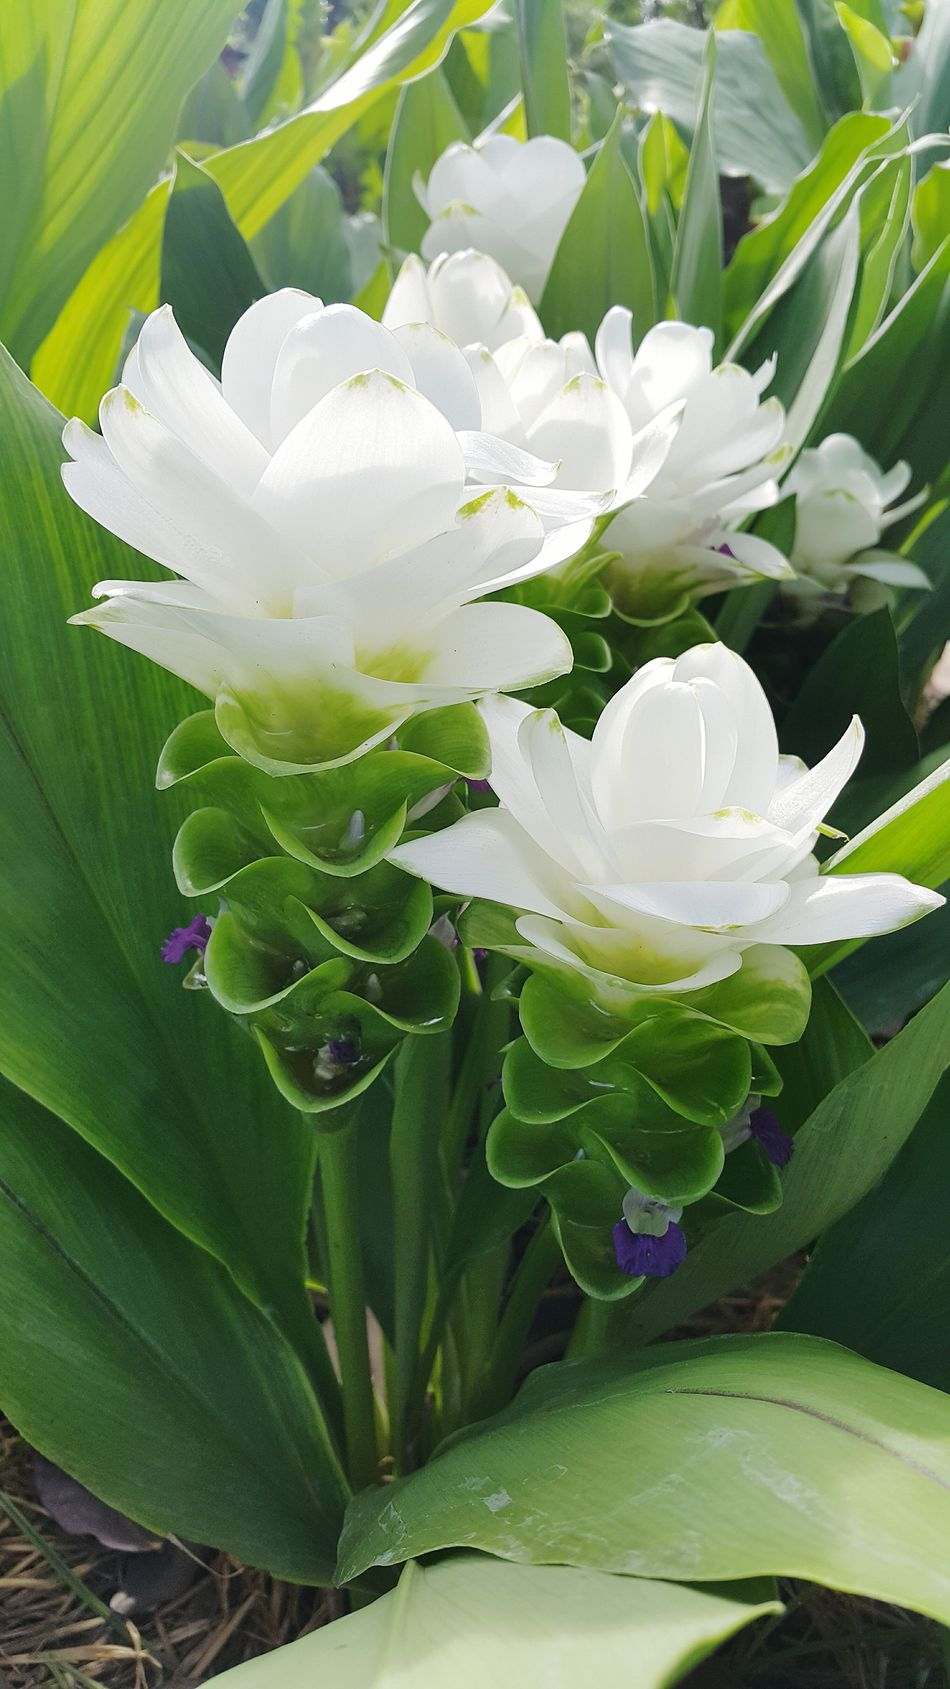 Siam Tulip Flowers Flower Collection Flowers, Nature And Beauty Flower Photography Nature Nature_collection Nature Photography Natural Beauty Naturelovers Flowerlovers Beautiful